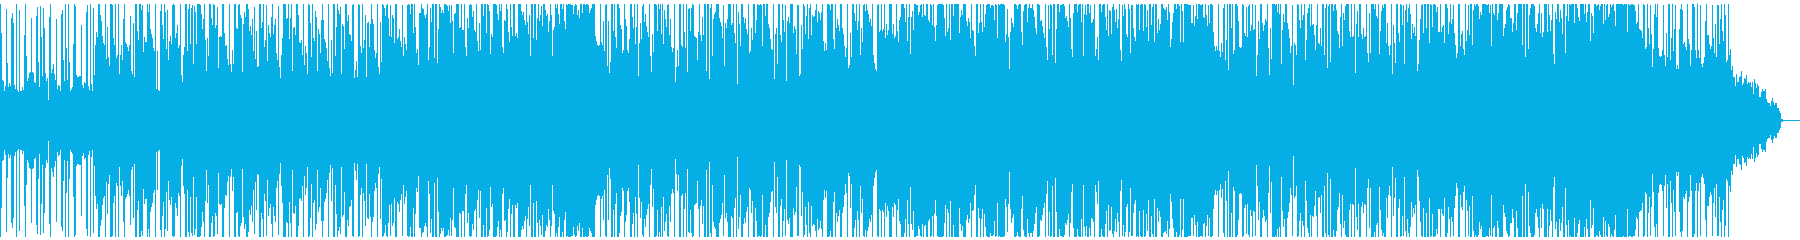 Urban city beat smooth jazz's reproduced waveform